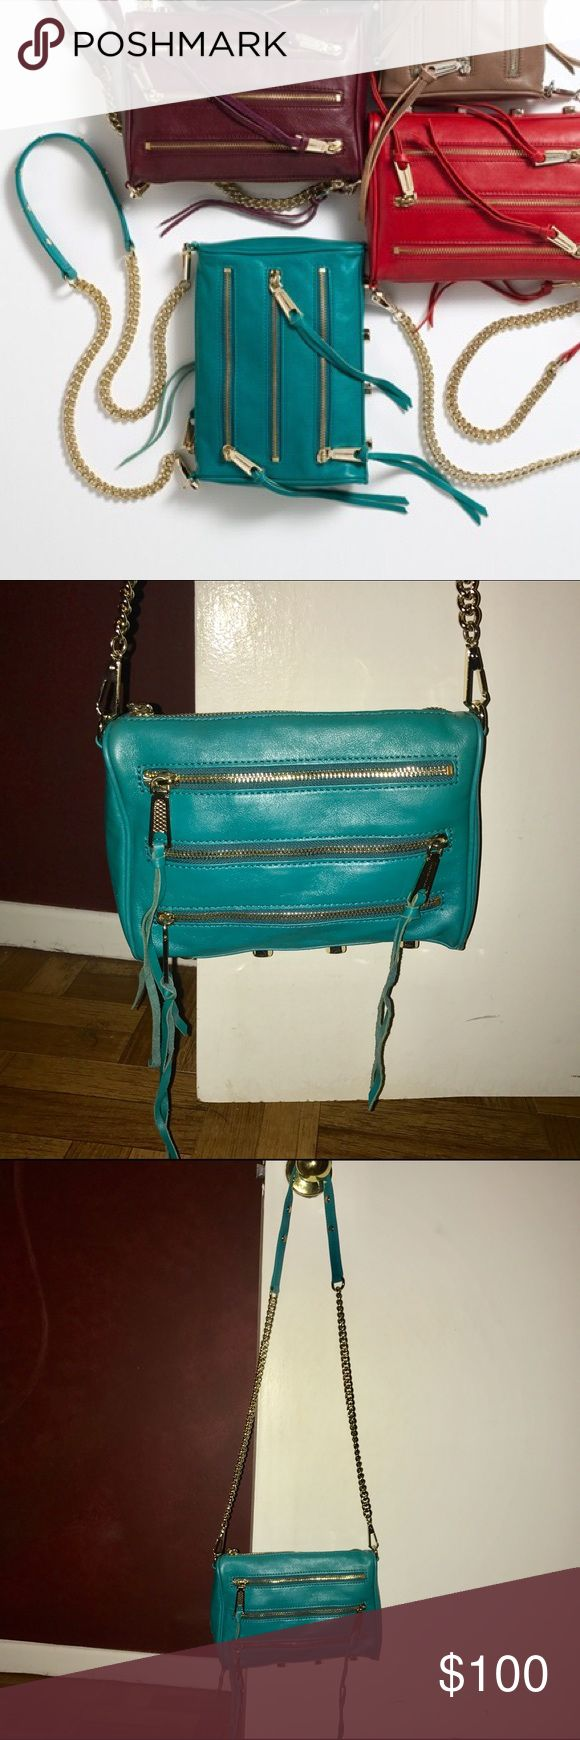 Teal Rebecca Minkoff crossbody 5 zip Rebecca Minkoff teal crossbody 5 zip. Gorgeous color! Gold hardware. Only used twice. Has all original packaging and dust bag that matches the interior. Rebecca Minkoff Bags Crossbody Bags